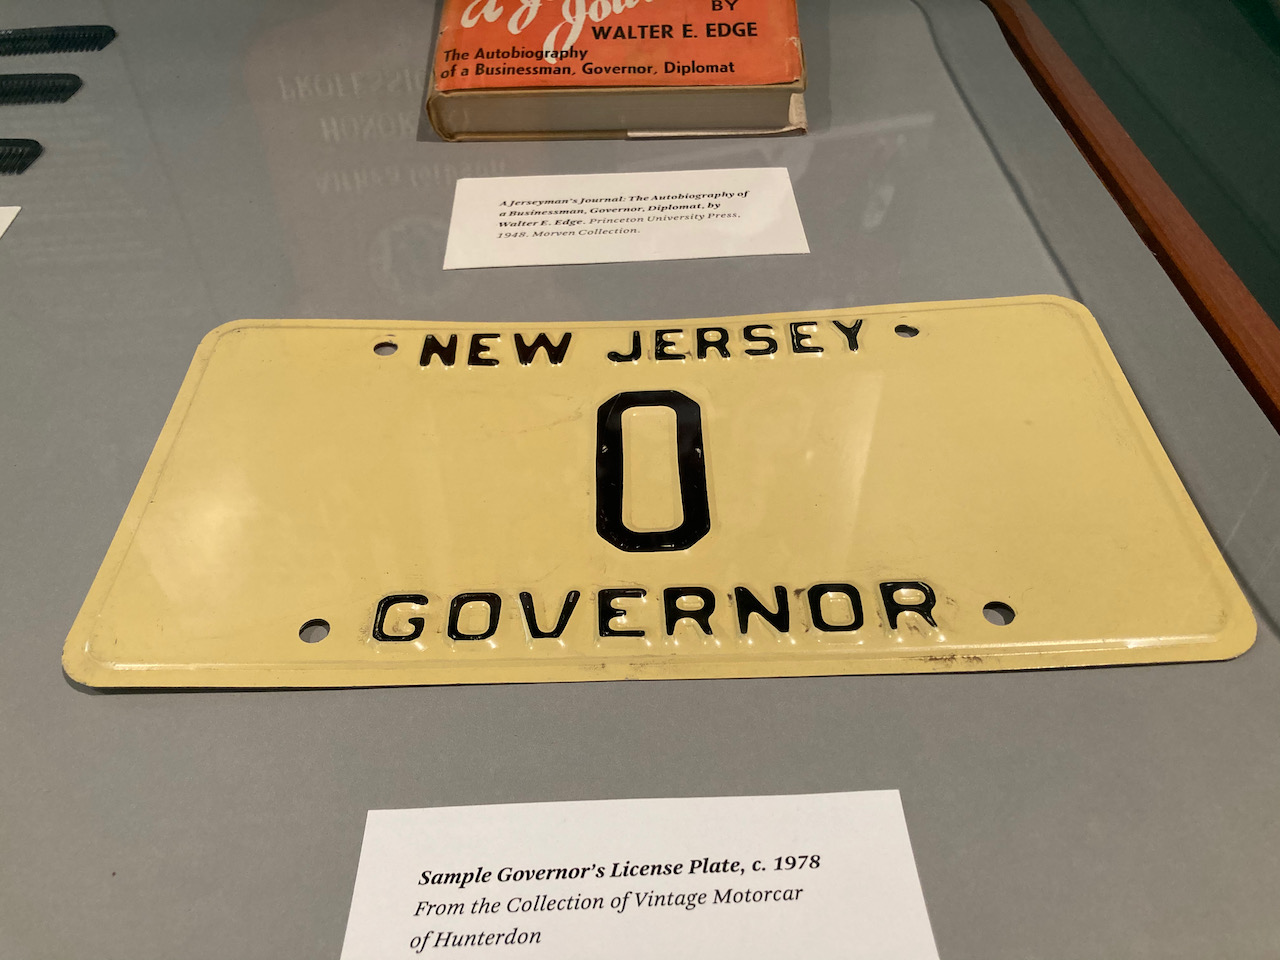 Display case with license play that reads NEW JERSEY 0 GOVERNOR.